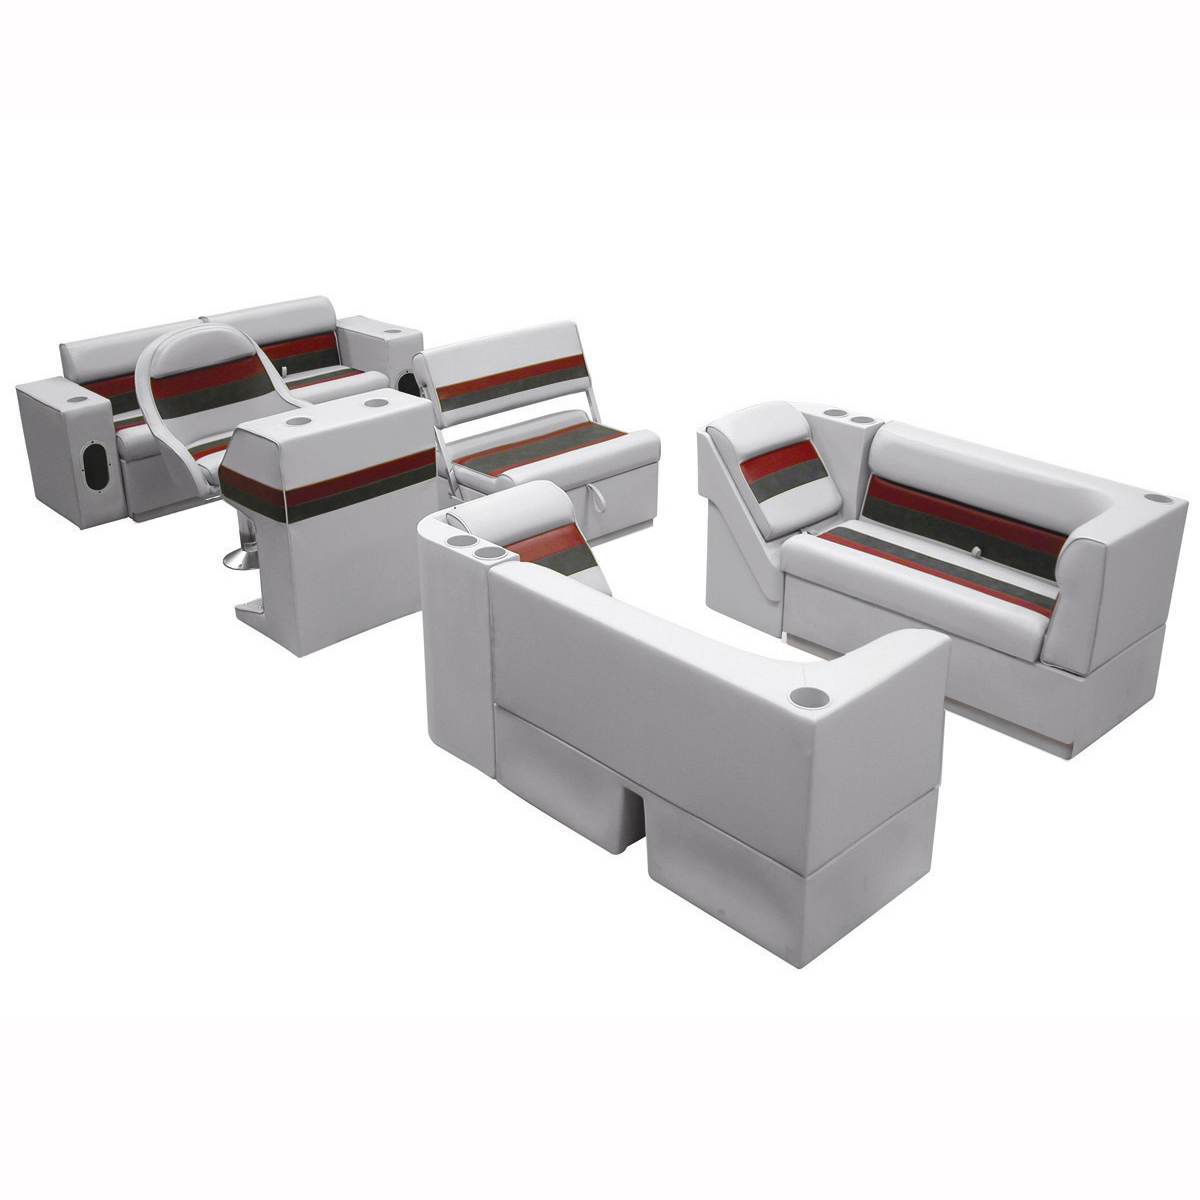 Deluxe Pontoon Furniture w/Toe Kick Base, Complete Package E, Gray/Red/Charcoal